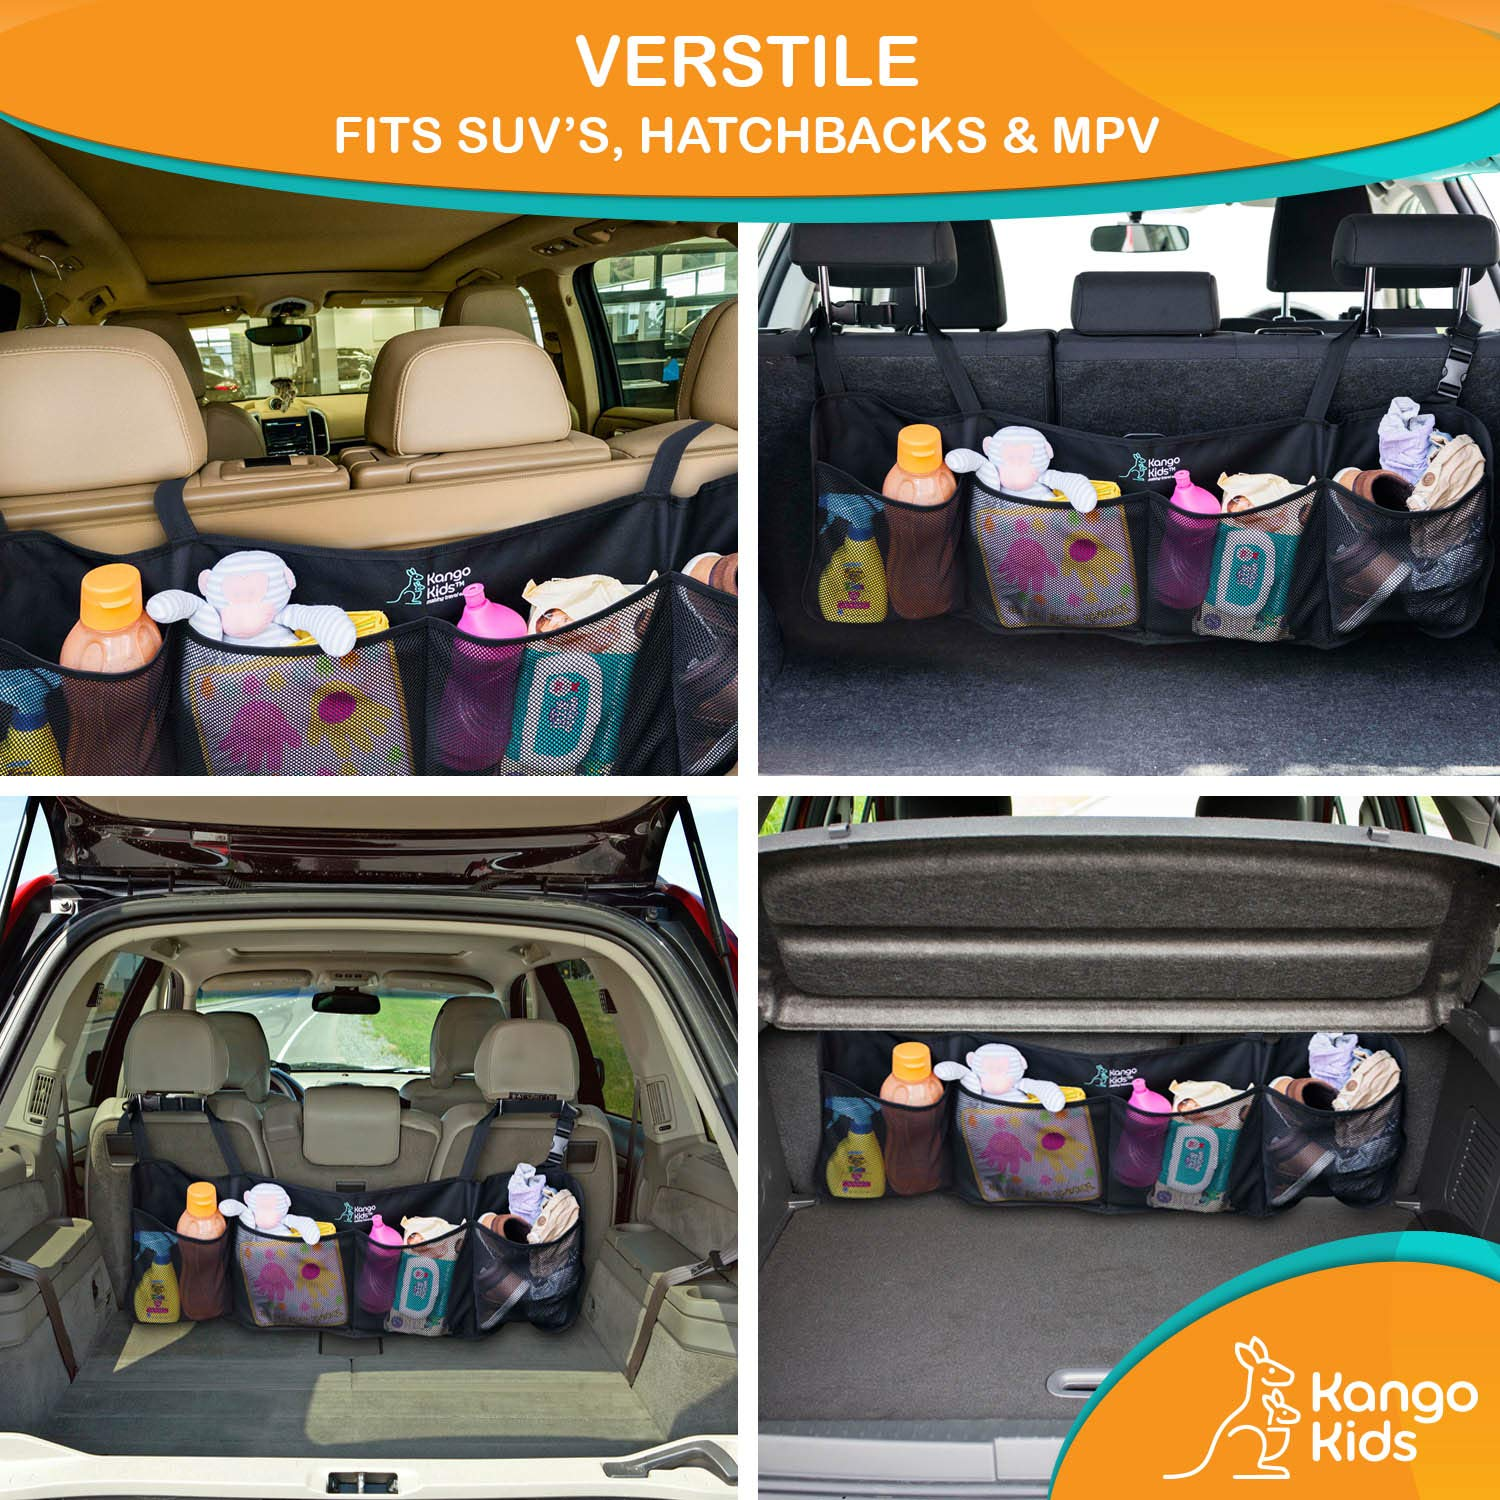 Easy To Install Organizers Fits Most Vehicles KangoKids Keep Your Trunk Tidy And Organized With Ease Space Saving Cargo Net Design With 4 Large Pockets Trunk Organizer for Car and SUV Lightweight